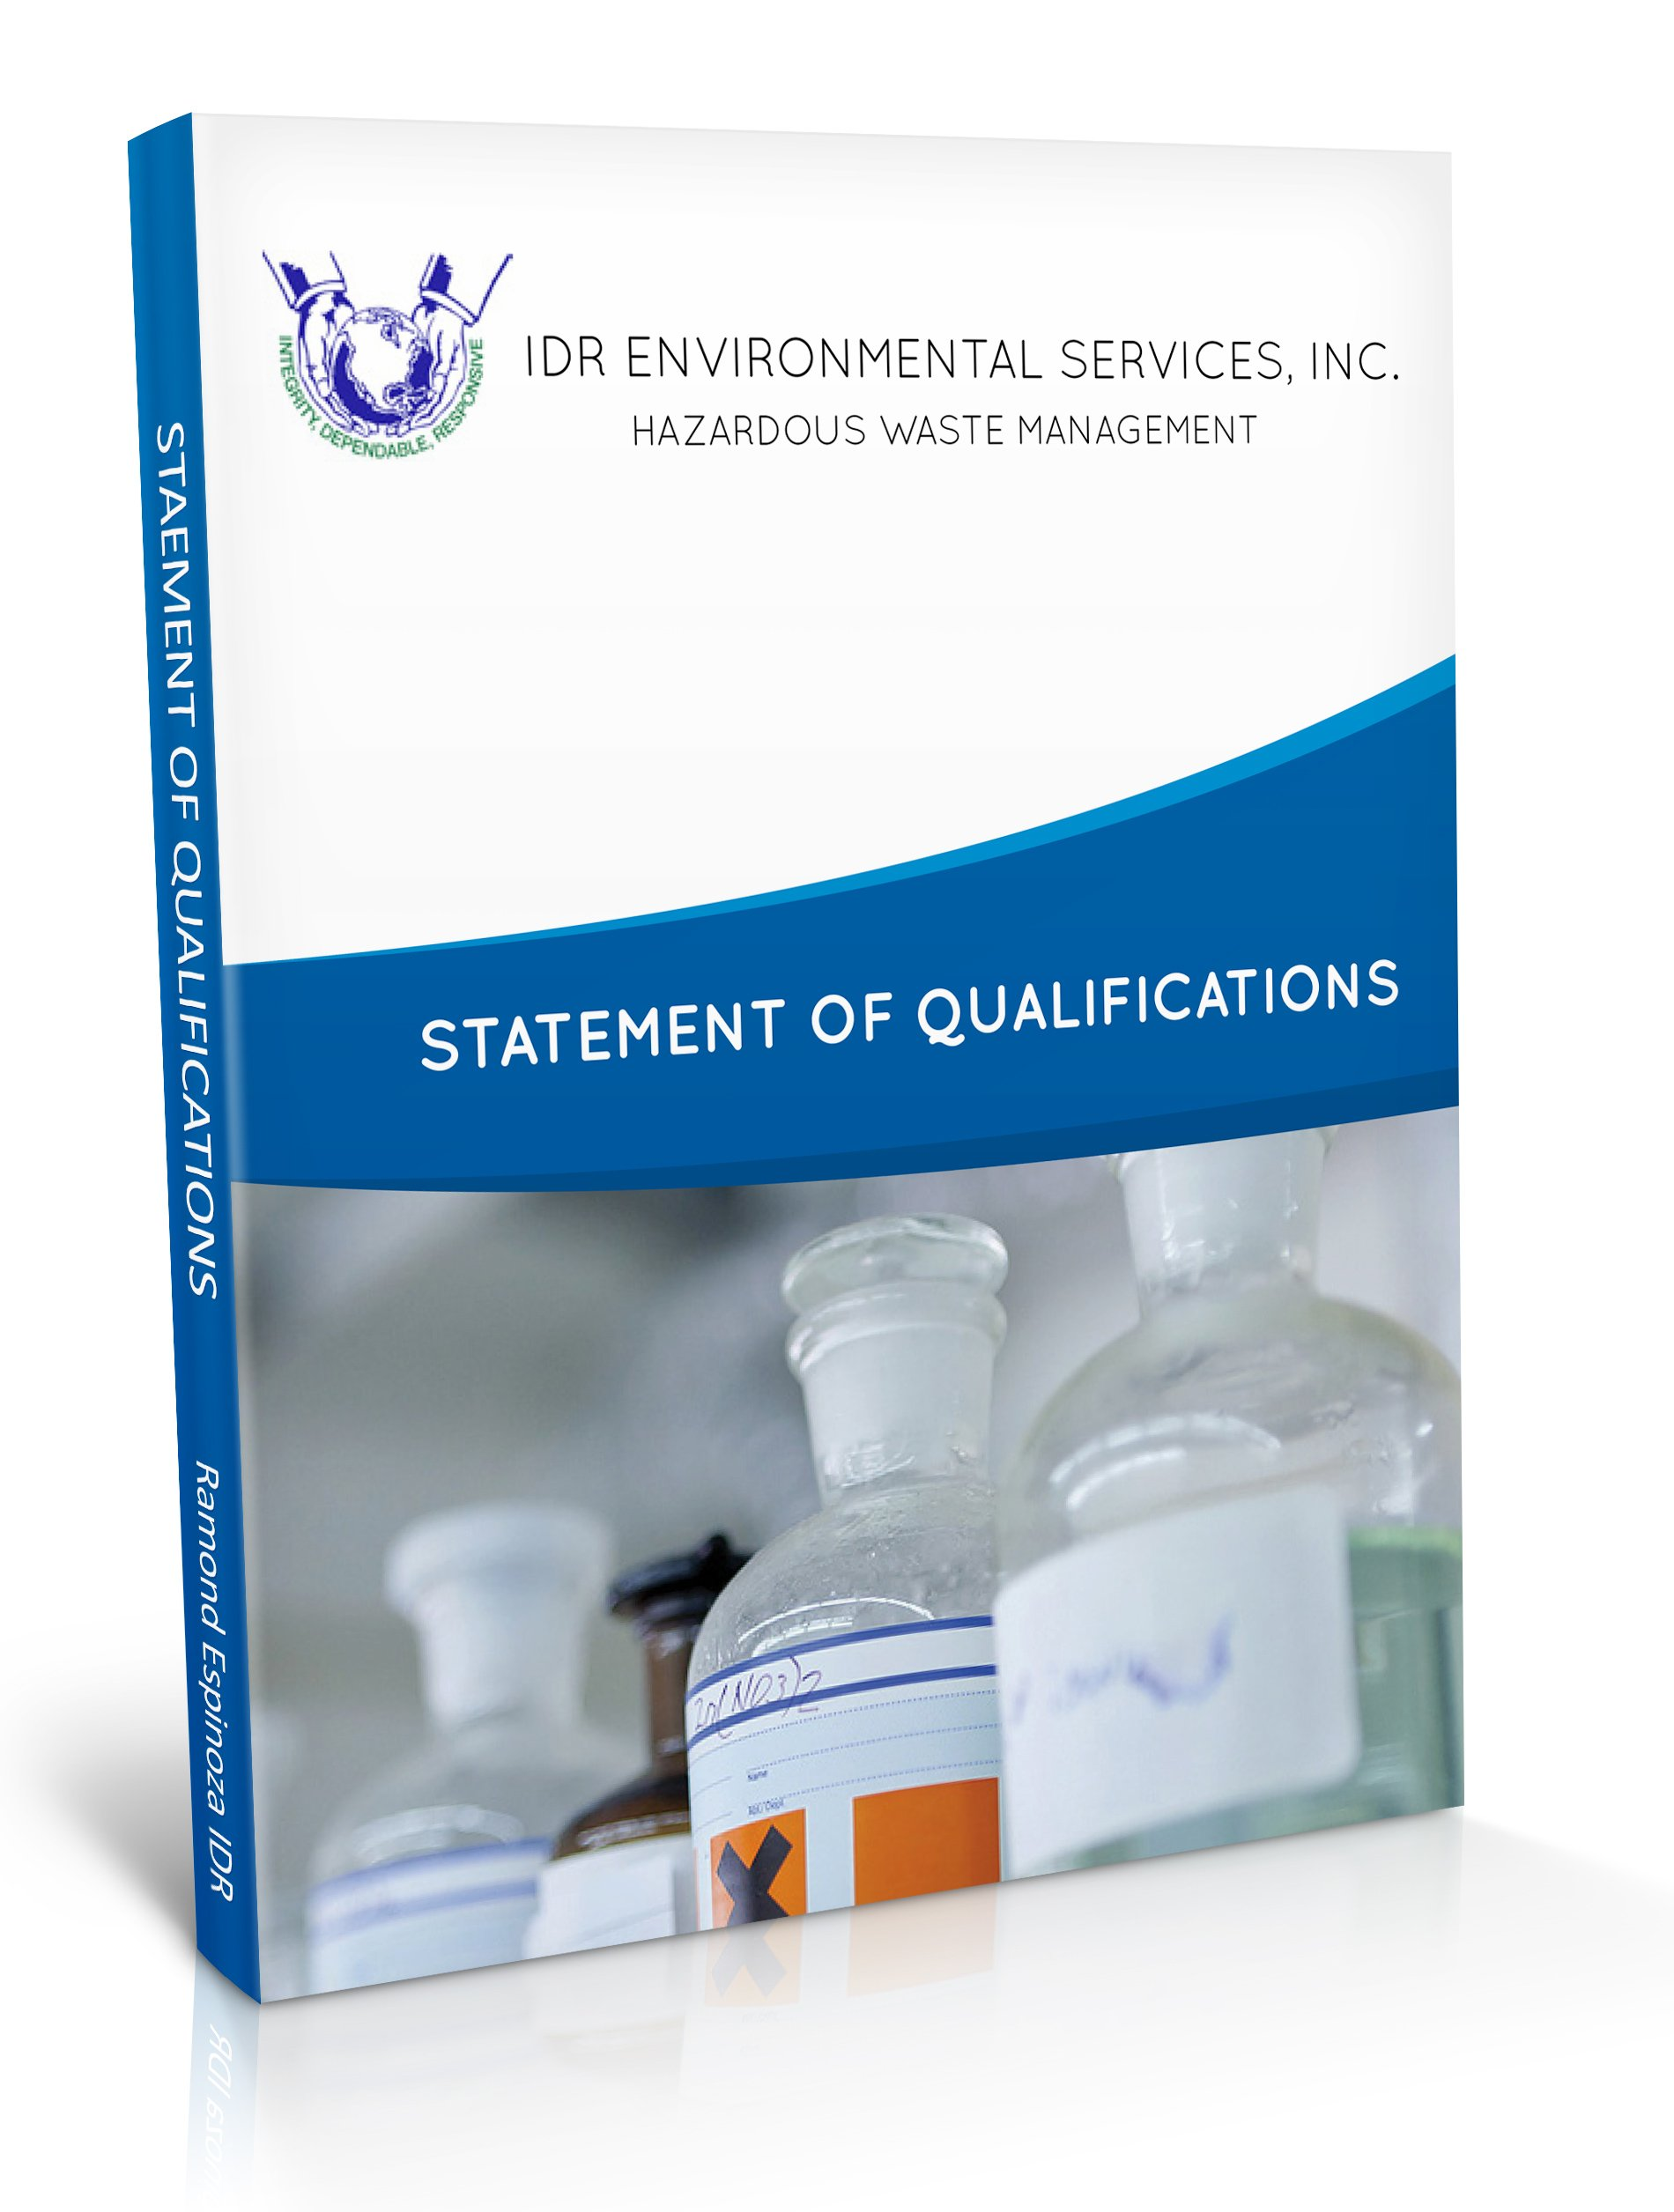 IDR Statement of Qualifications